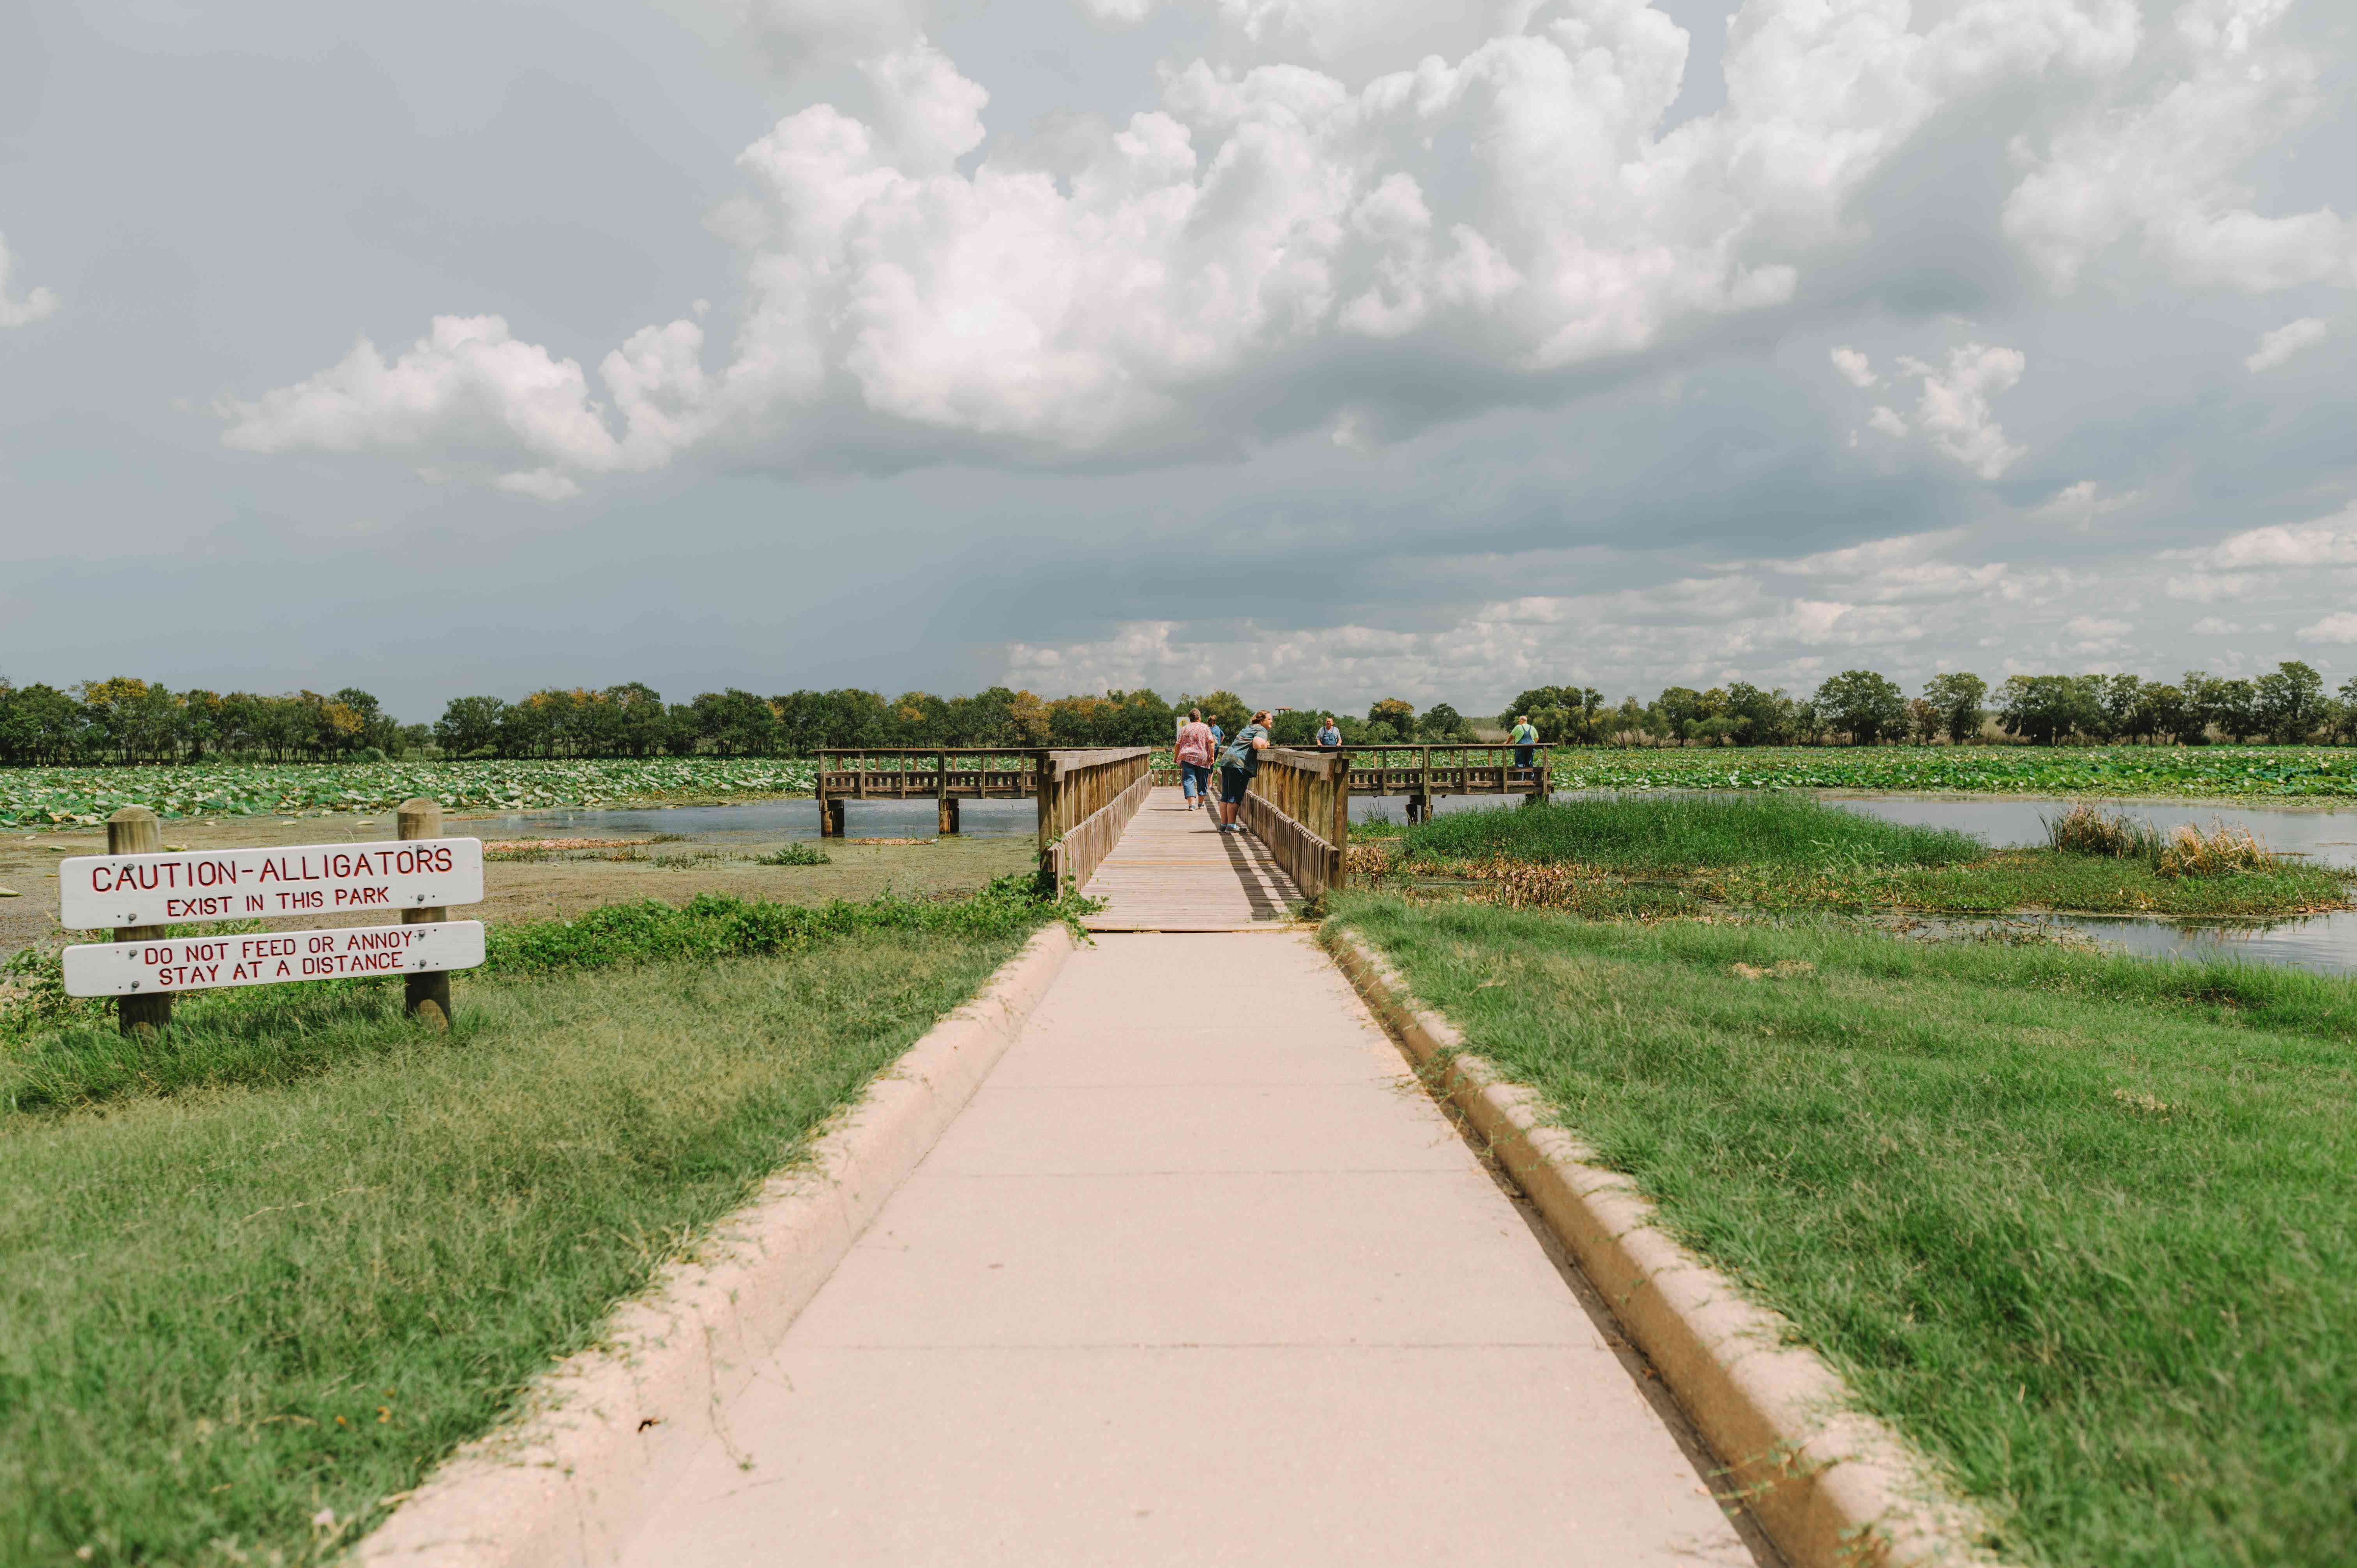 A pathway over waters where people are looking for alligators. A sign in the foreground warning to keep at a distance and not to feed or annoy the alligators